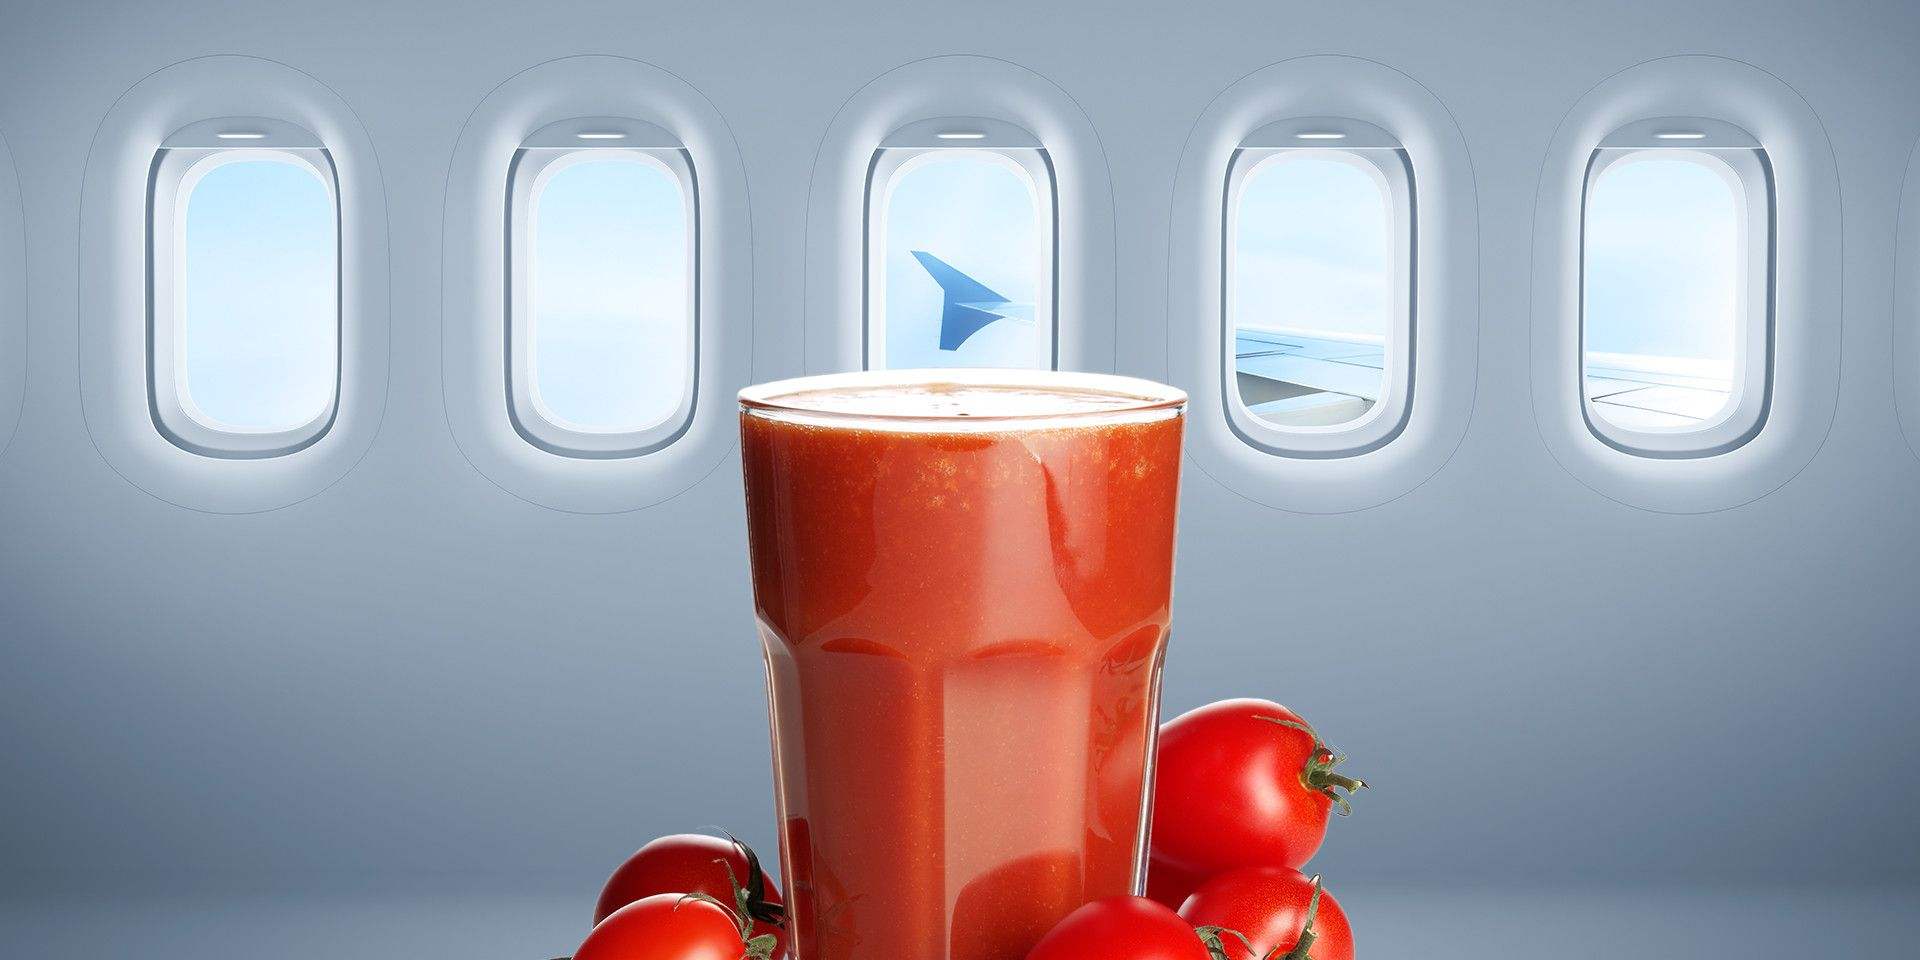 Tomato Juice Is the Best Airplane Drink. Hear Me Out.